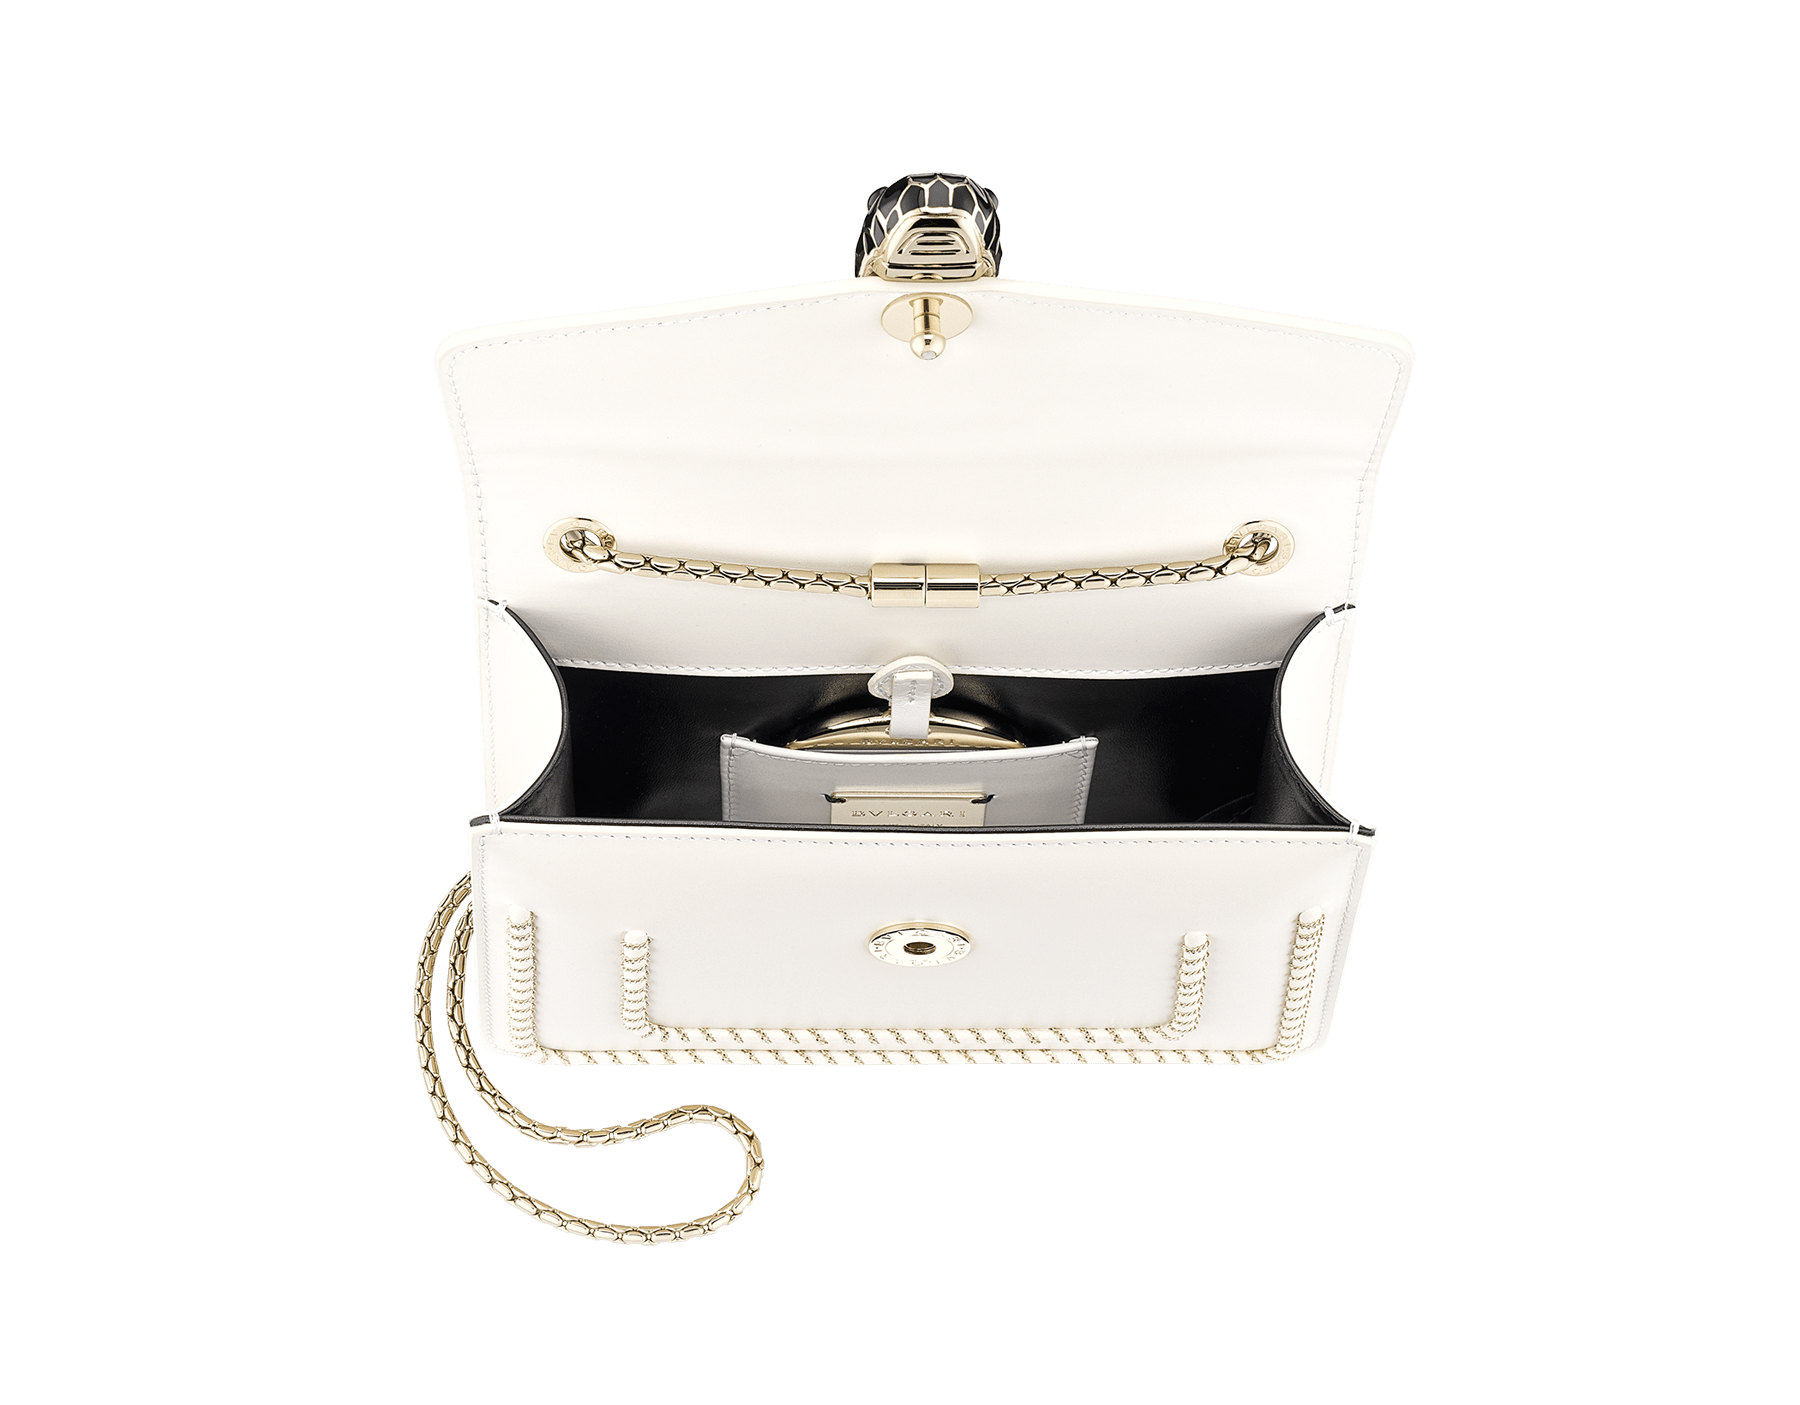 """""""Serpenti Forever"""" crossbody bag in black calf leather, featuring a Woven Chain motif. Iconic snakehead closure in light gold plated brass enriched with shiny black enamel and black onyx eyes 422-WC image 4"""